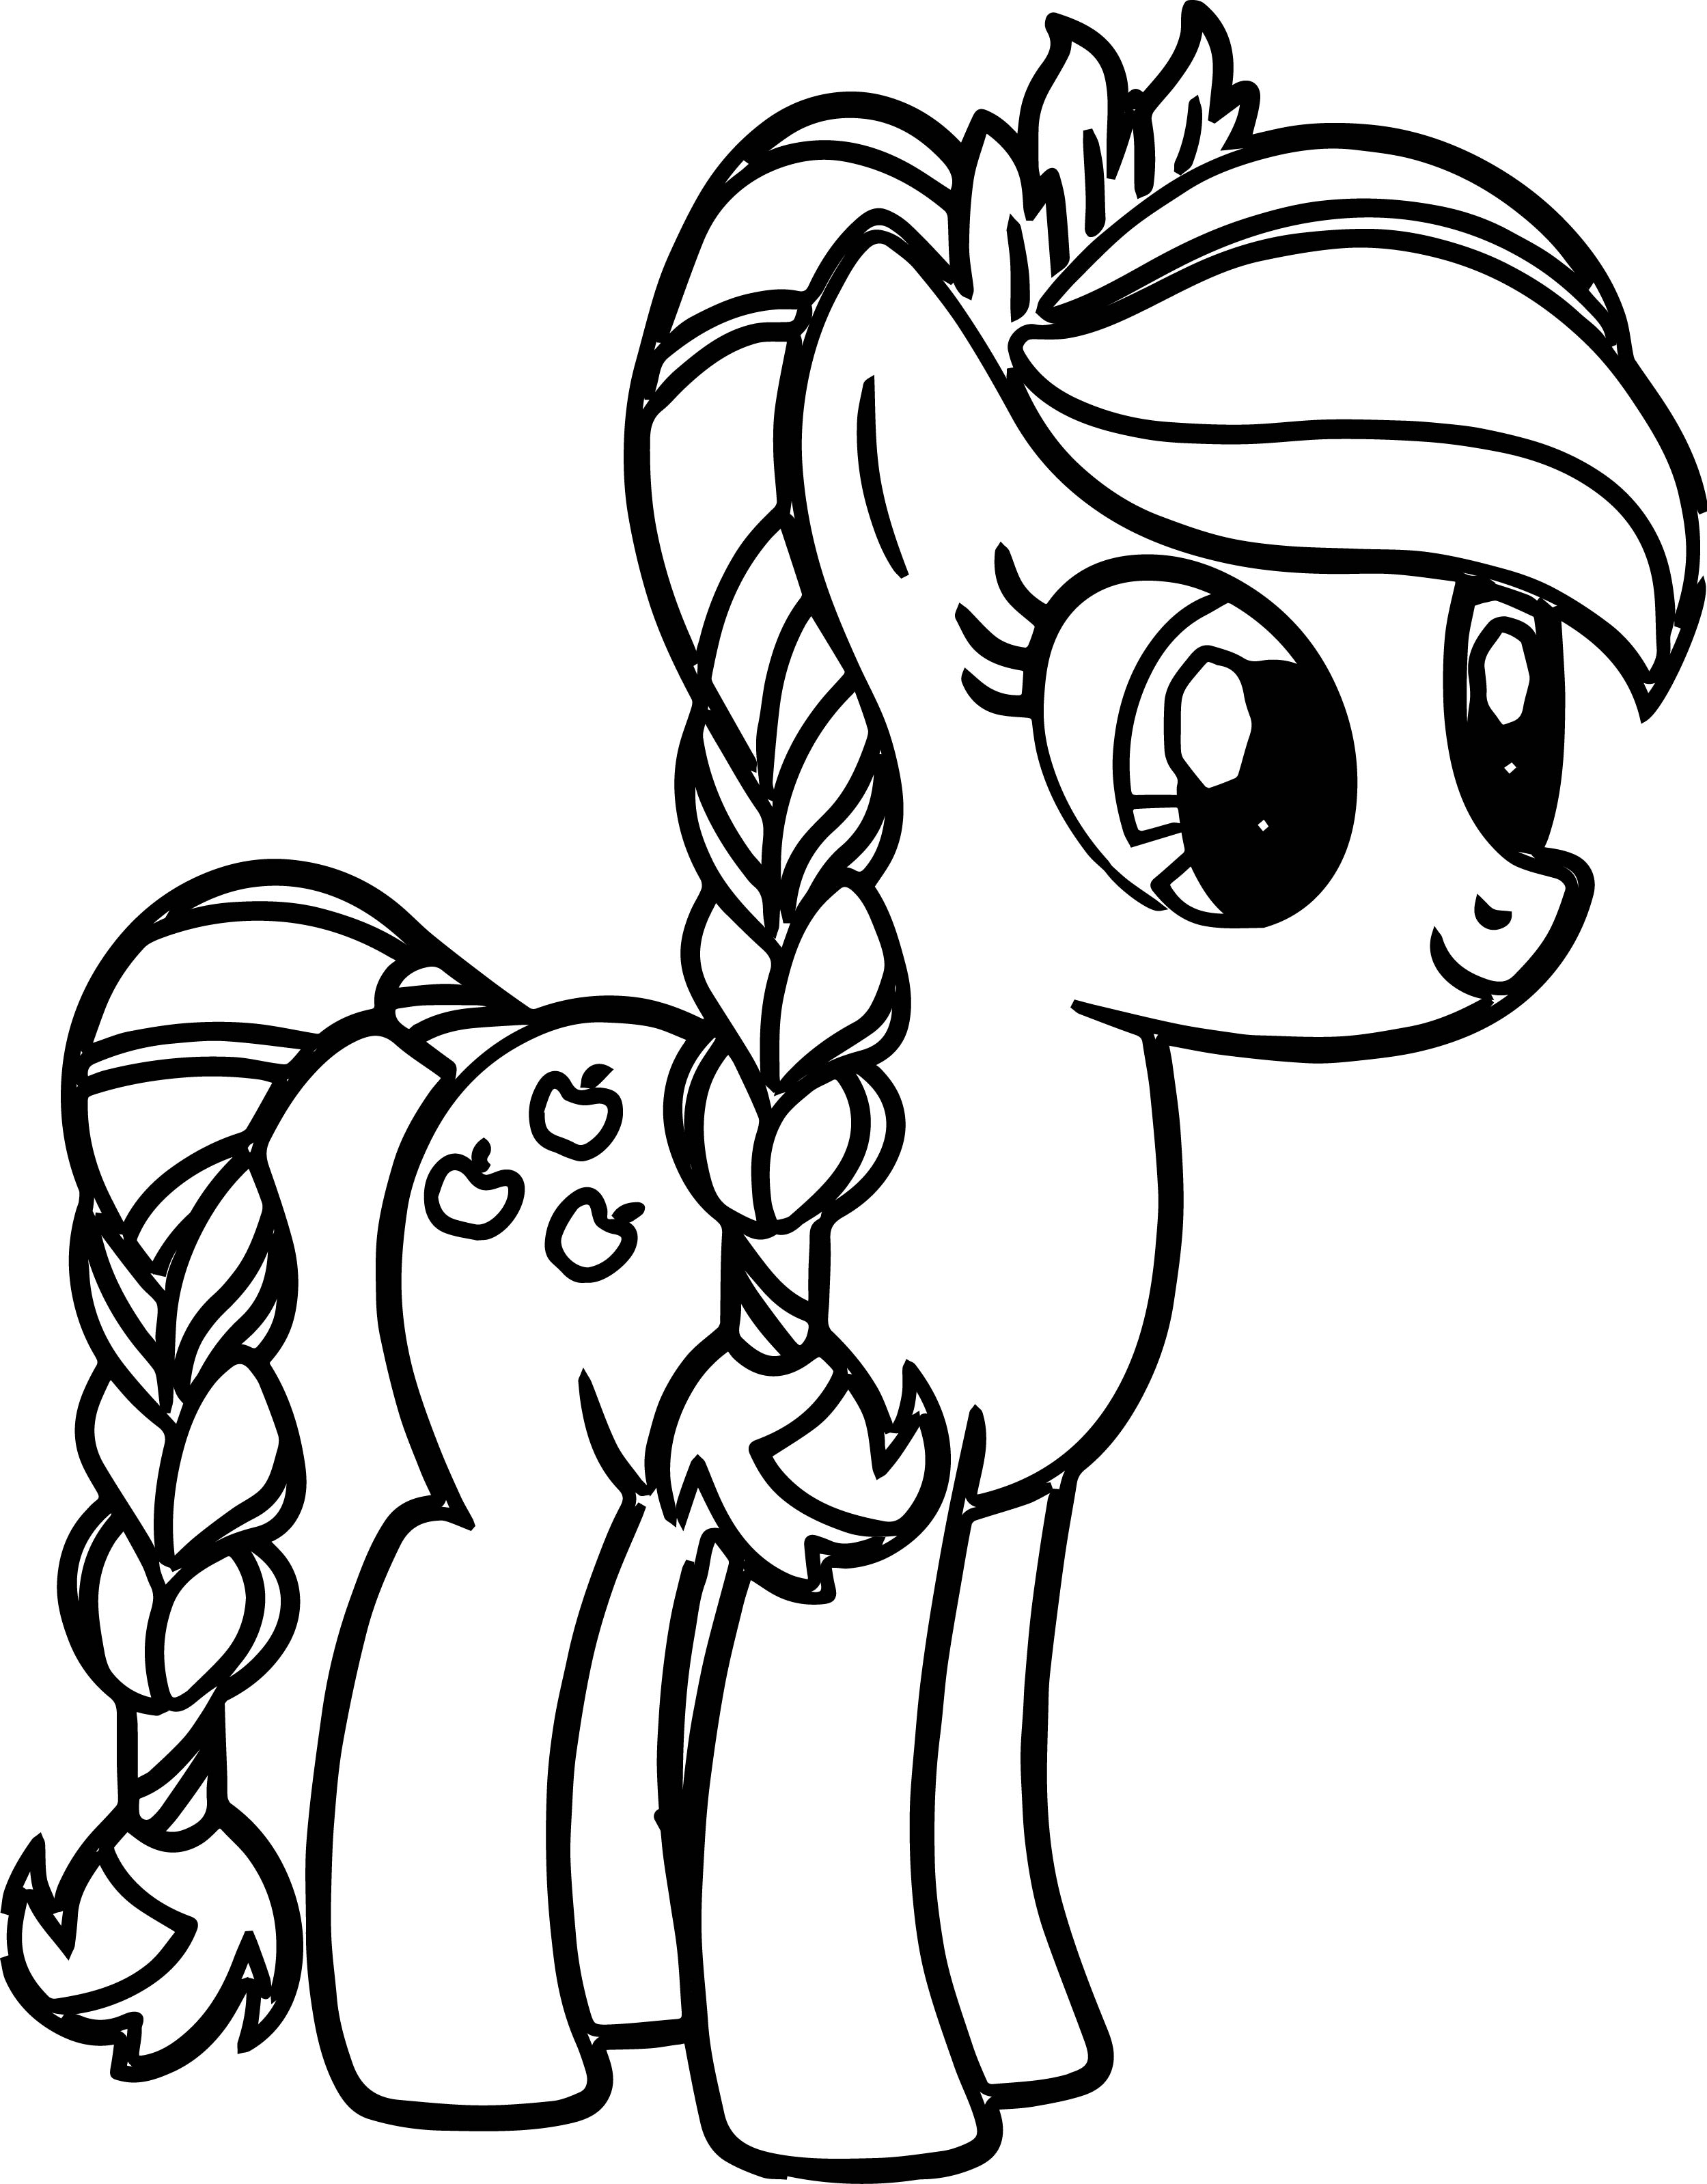 pony cartoon my little pony coloring pages - Pony Coloring Pages